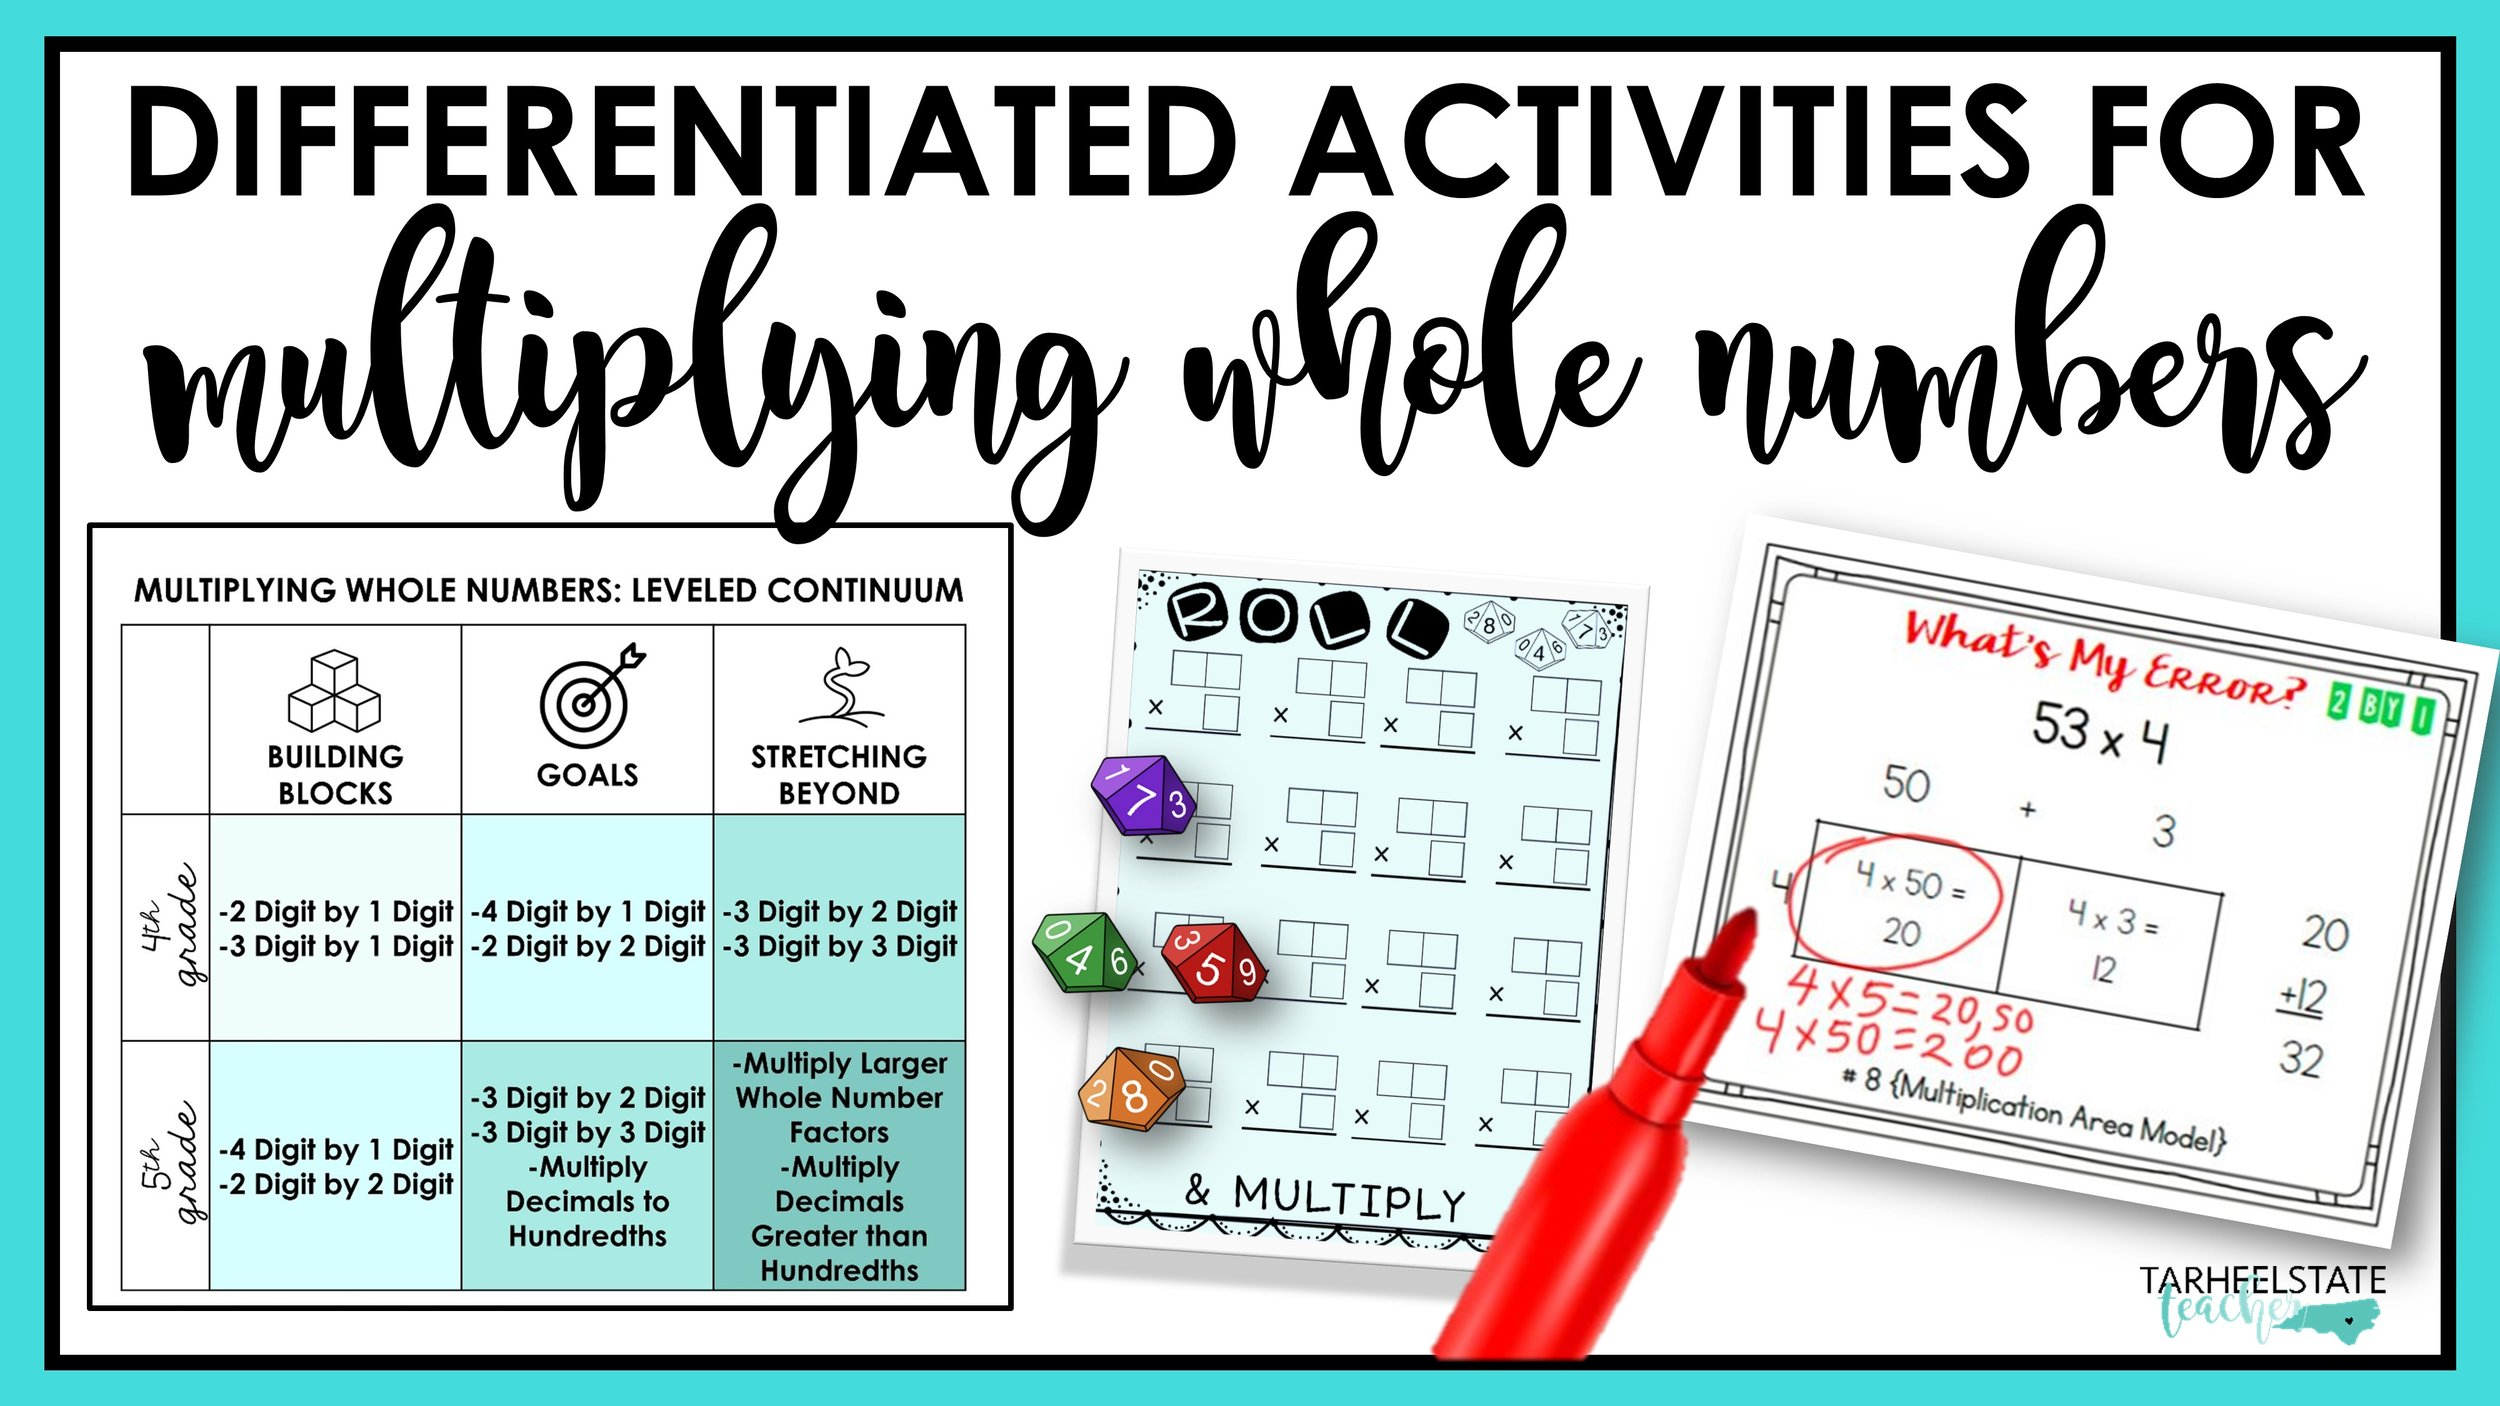 Differentiated activities for multiplying whole numbers.JPG